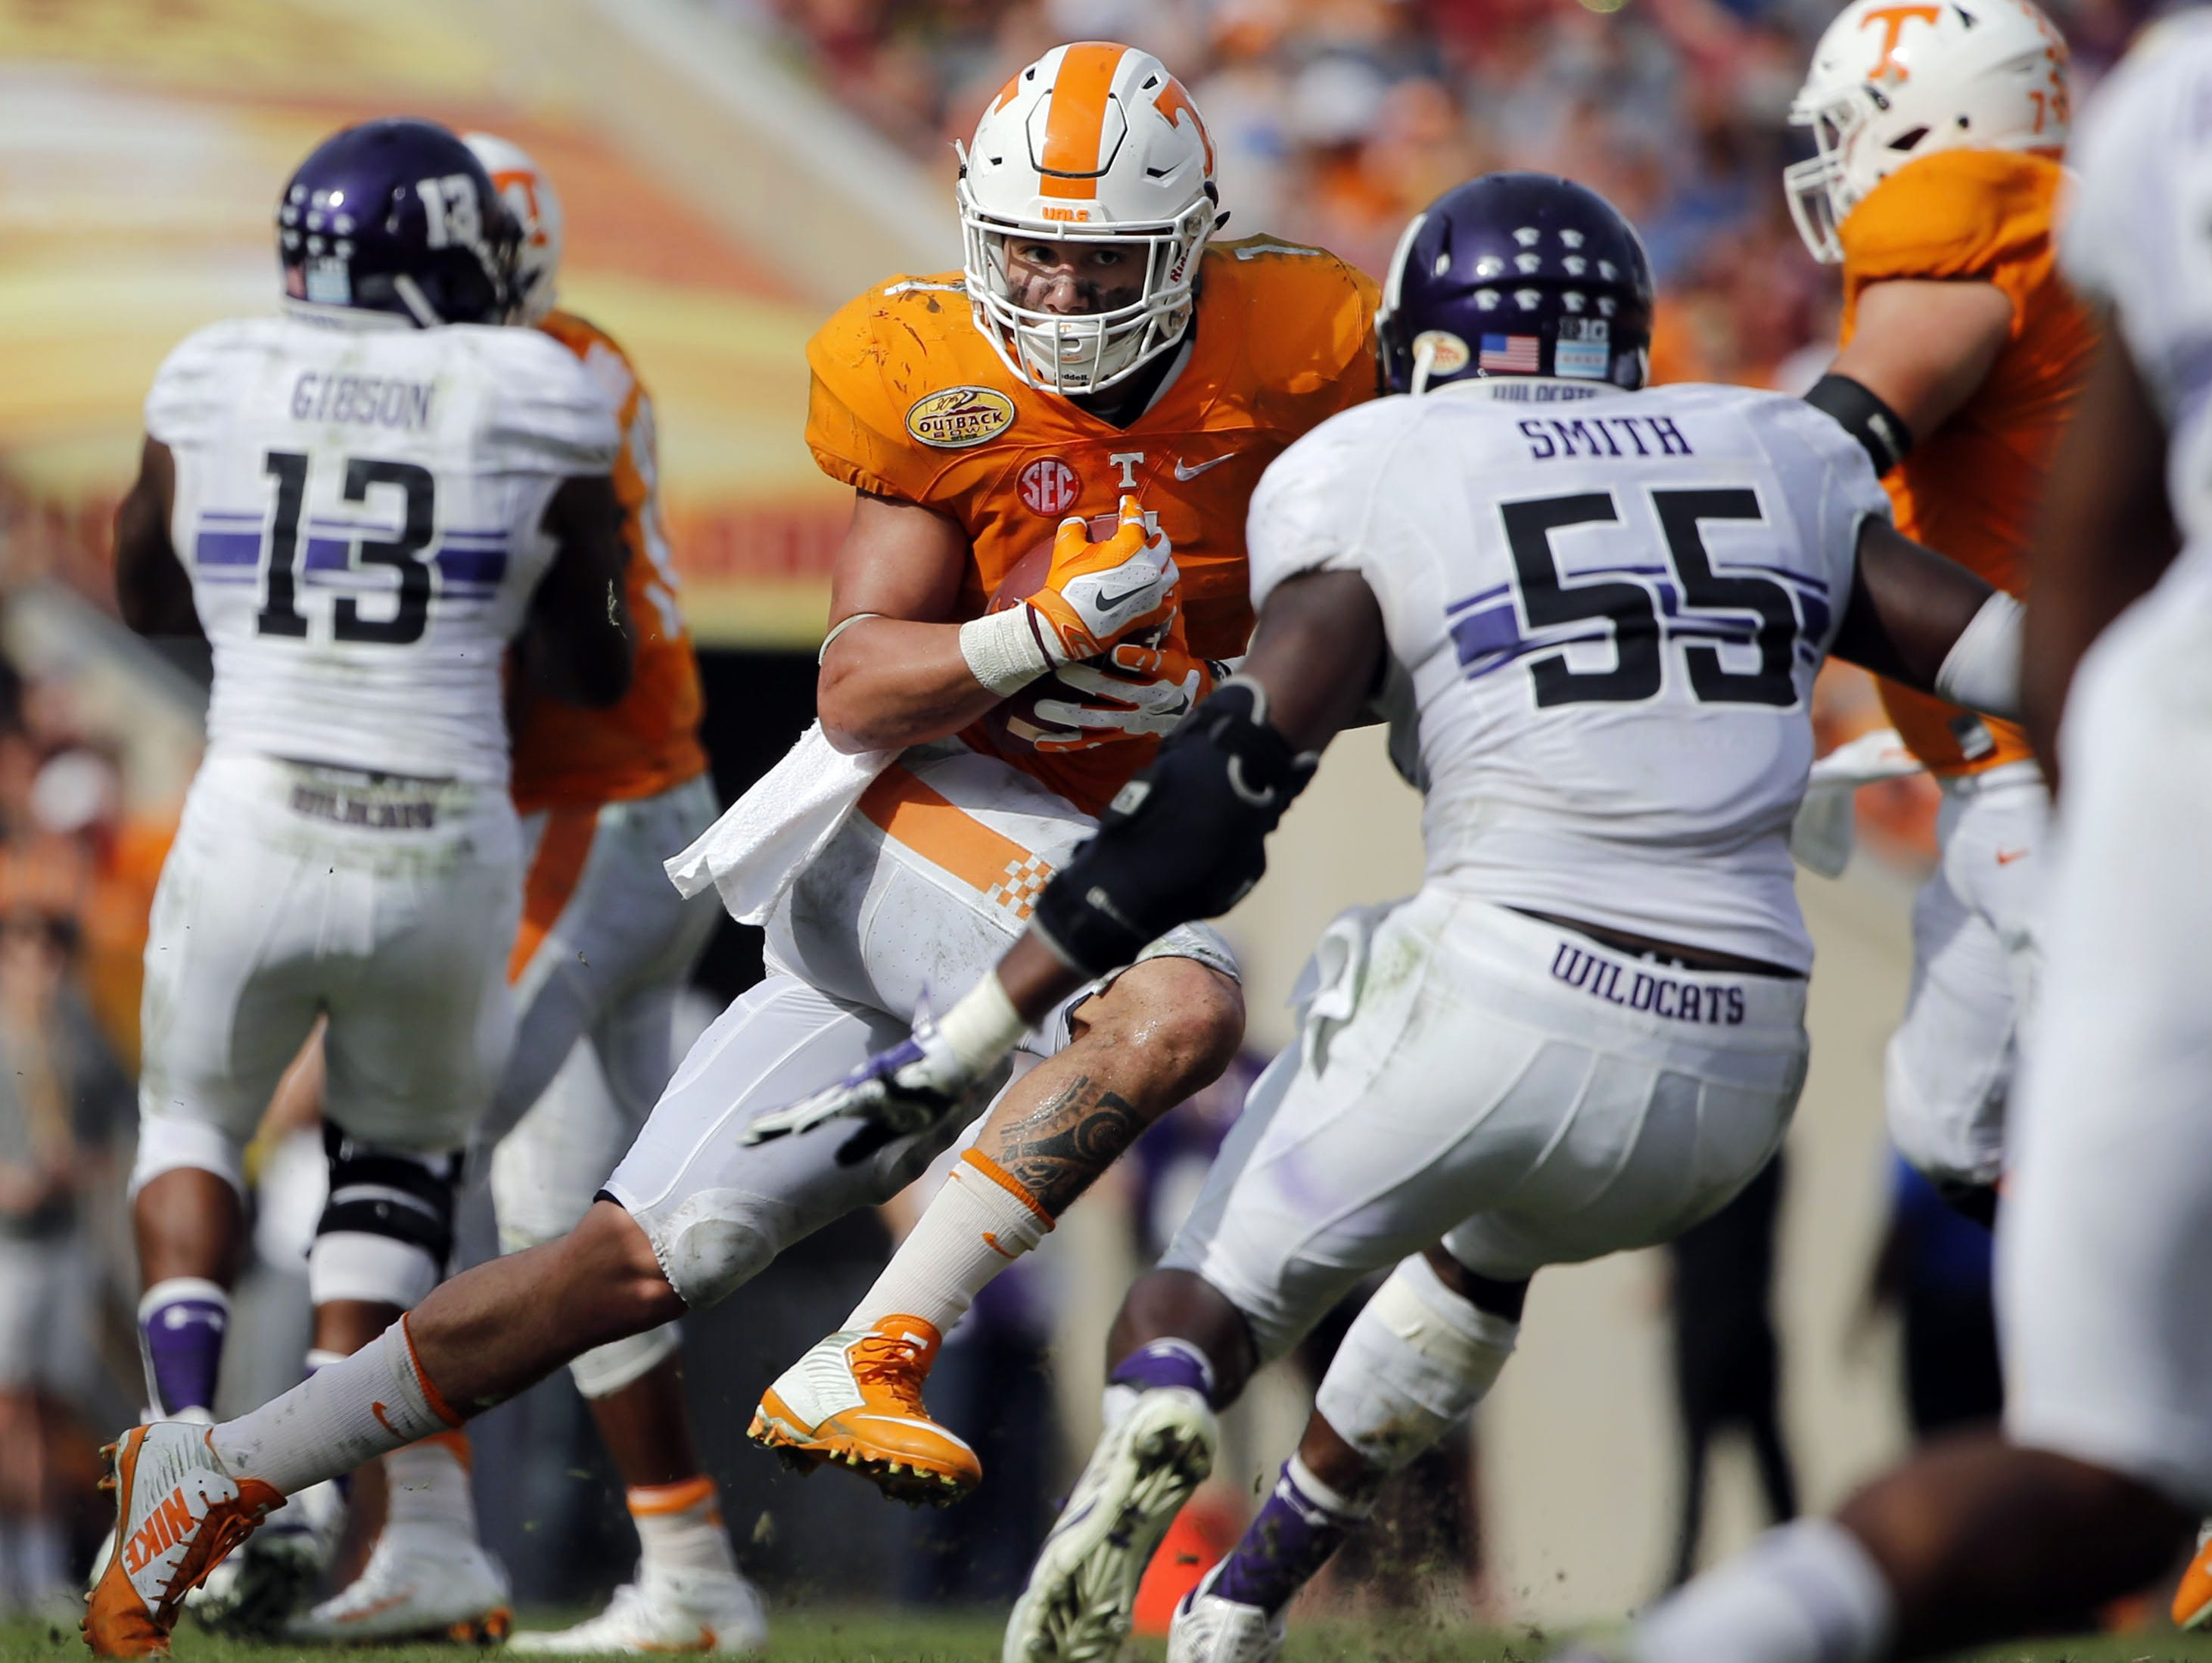 In just two seasons at Tennessee, former Beech star Jalen Hurd is less than 1,000 yards shy of becoming the school's all-time leading rusher.